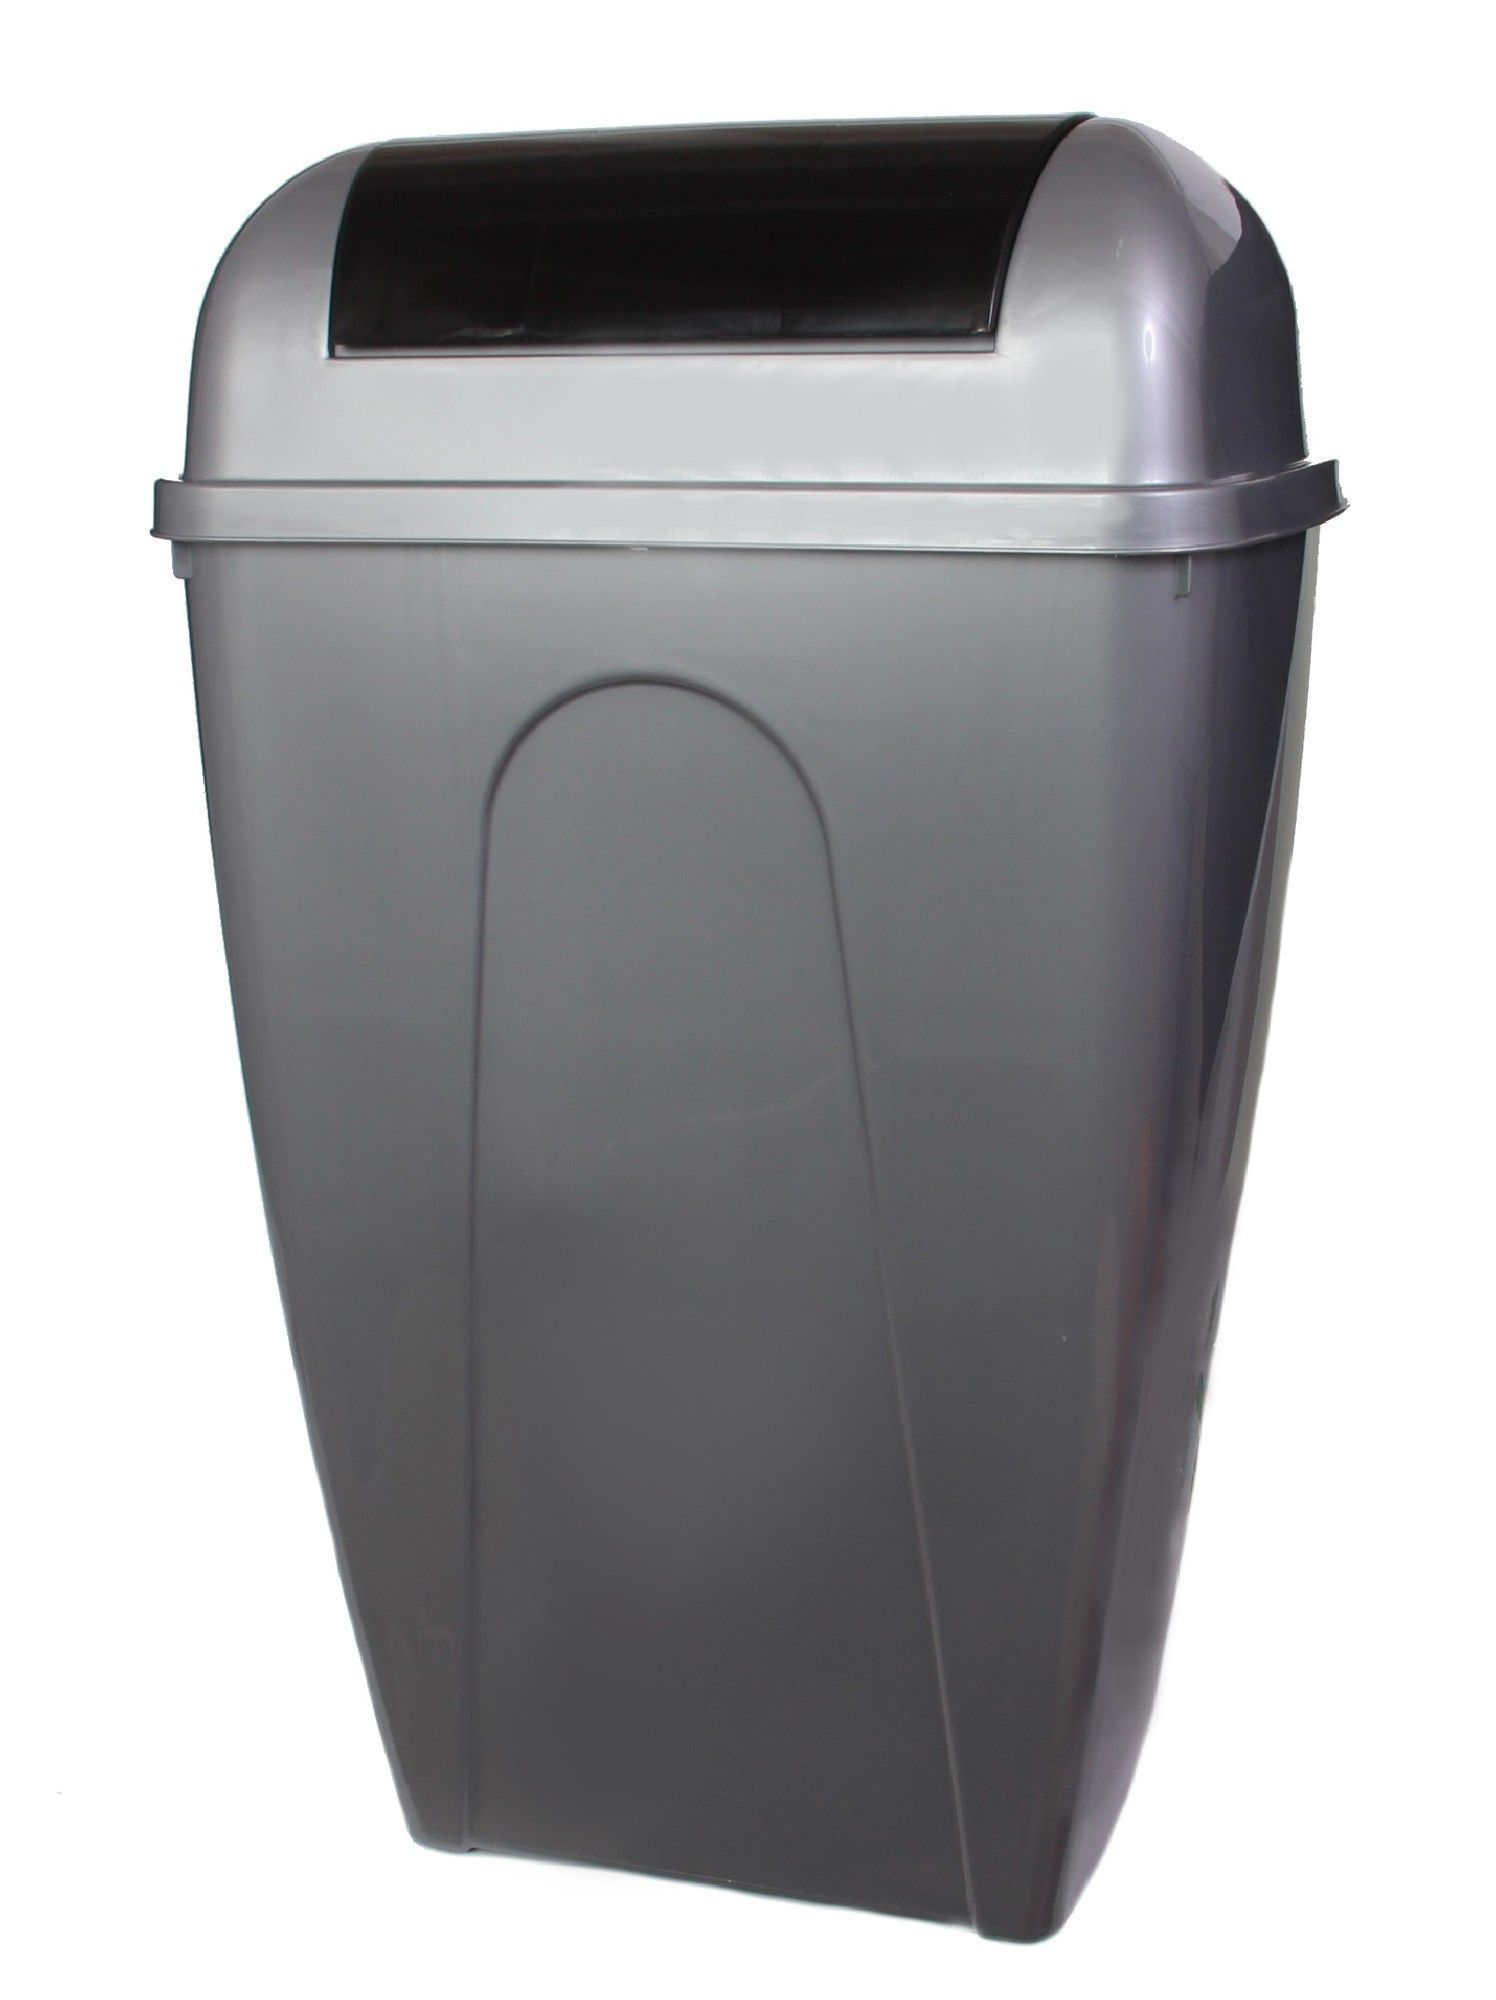 Plastic 13 Gallon Swing Top Trash Can Waste Disposal Office